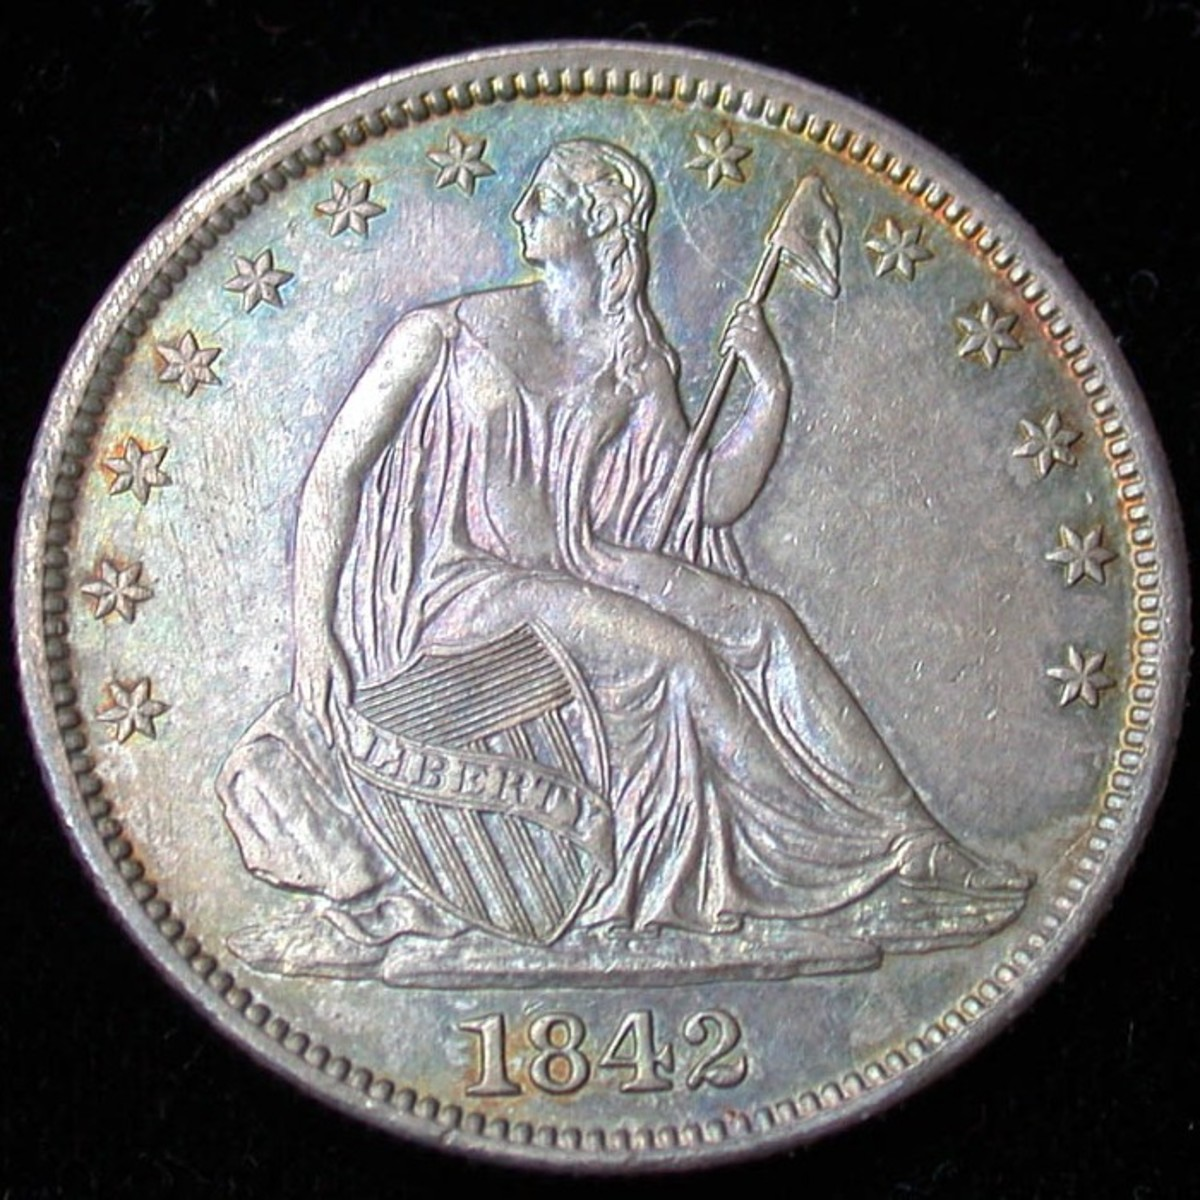 1842 Seated Liberty Half Dollar Medium Date. Photo Courtesy: coinpage.com